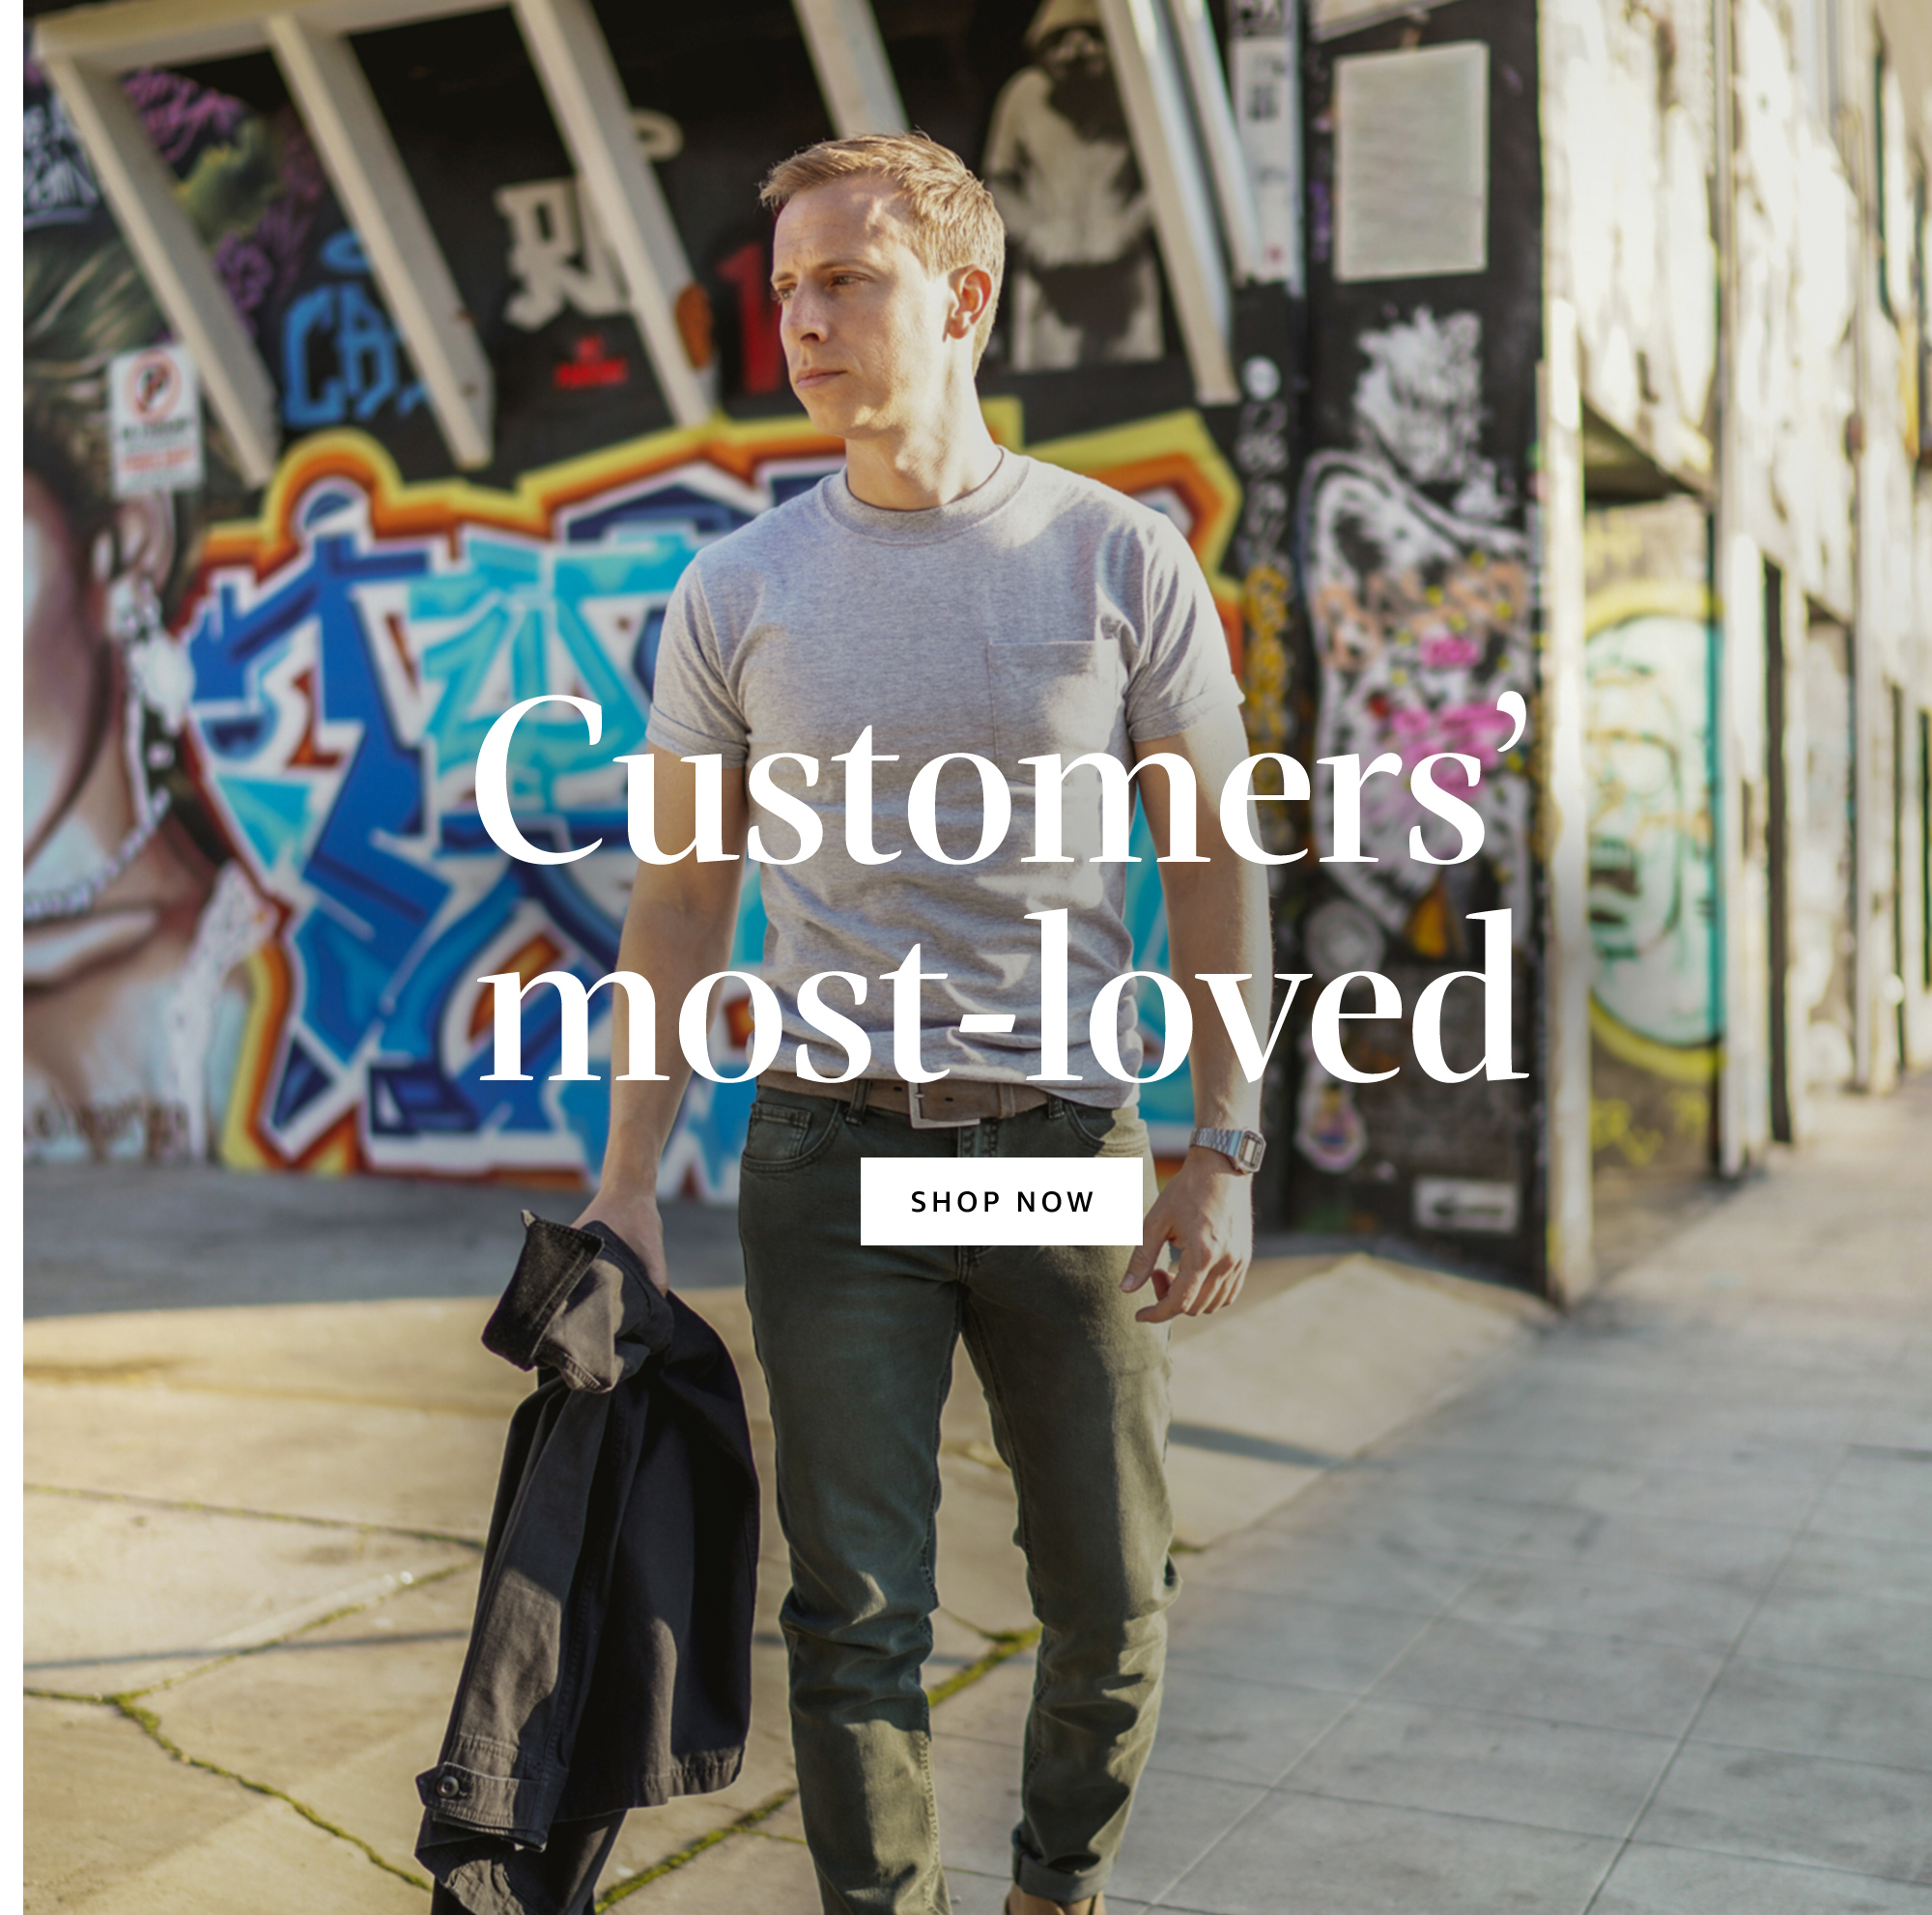 Customers' most-loved